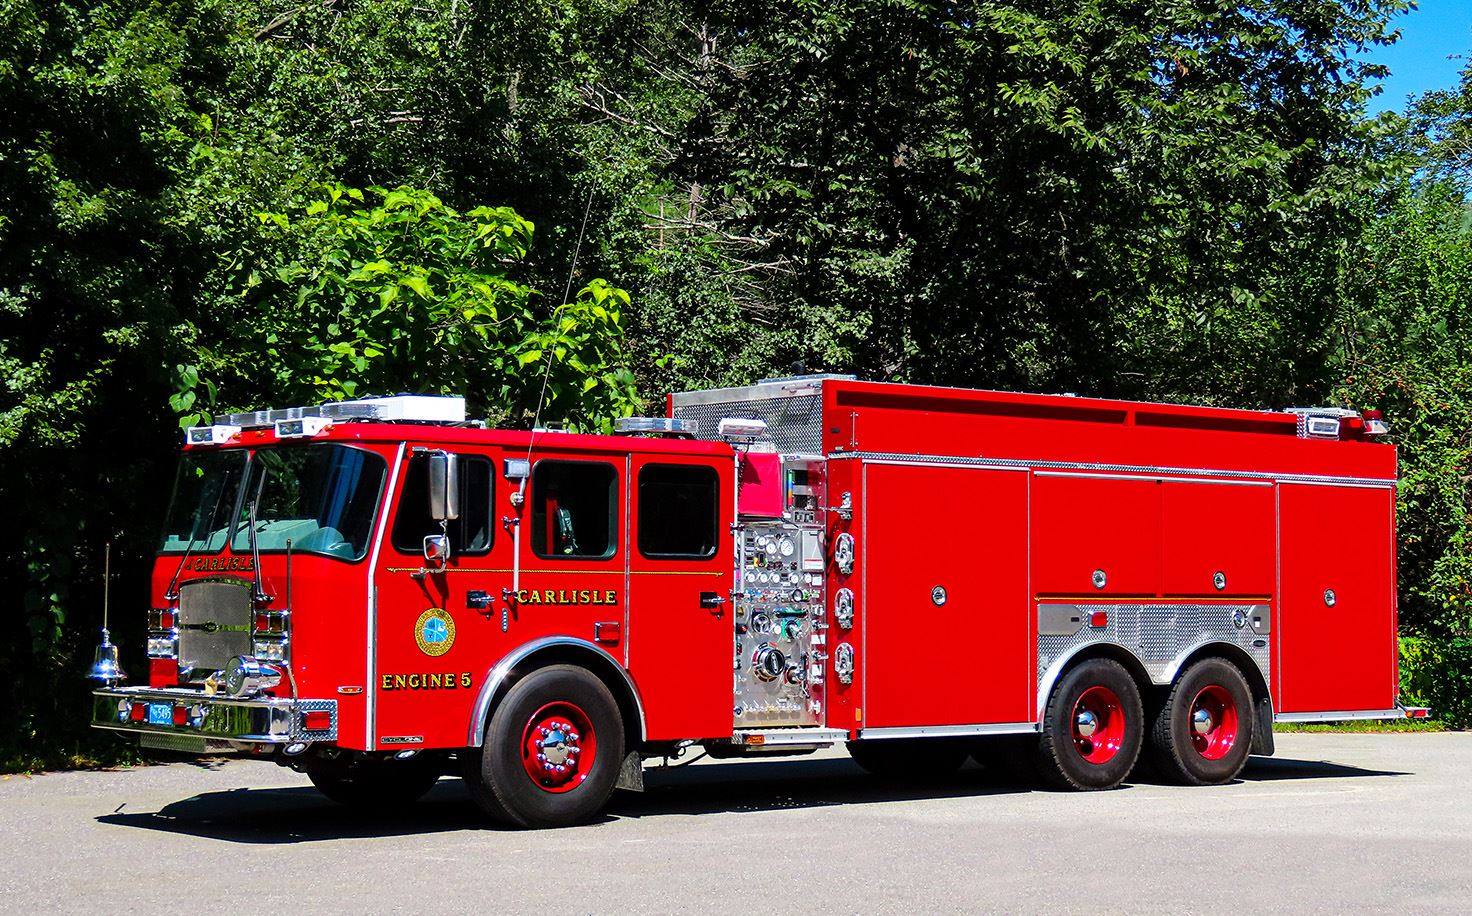 Carlisle Engine 5